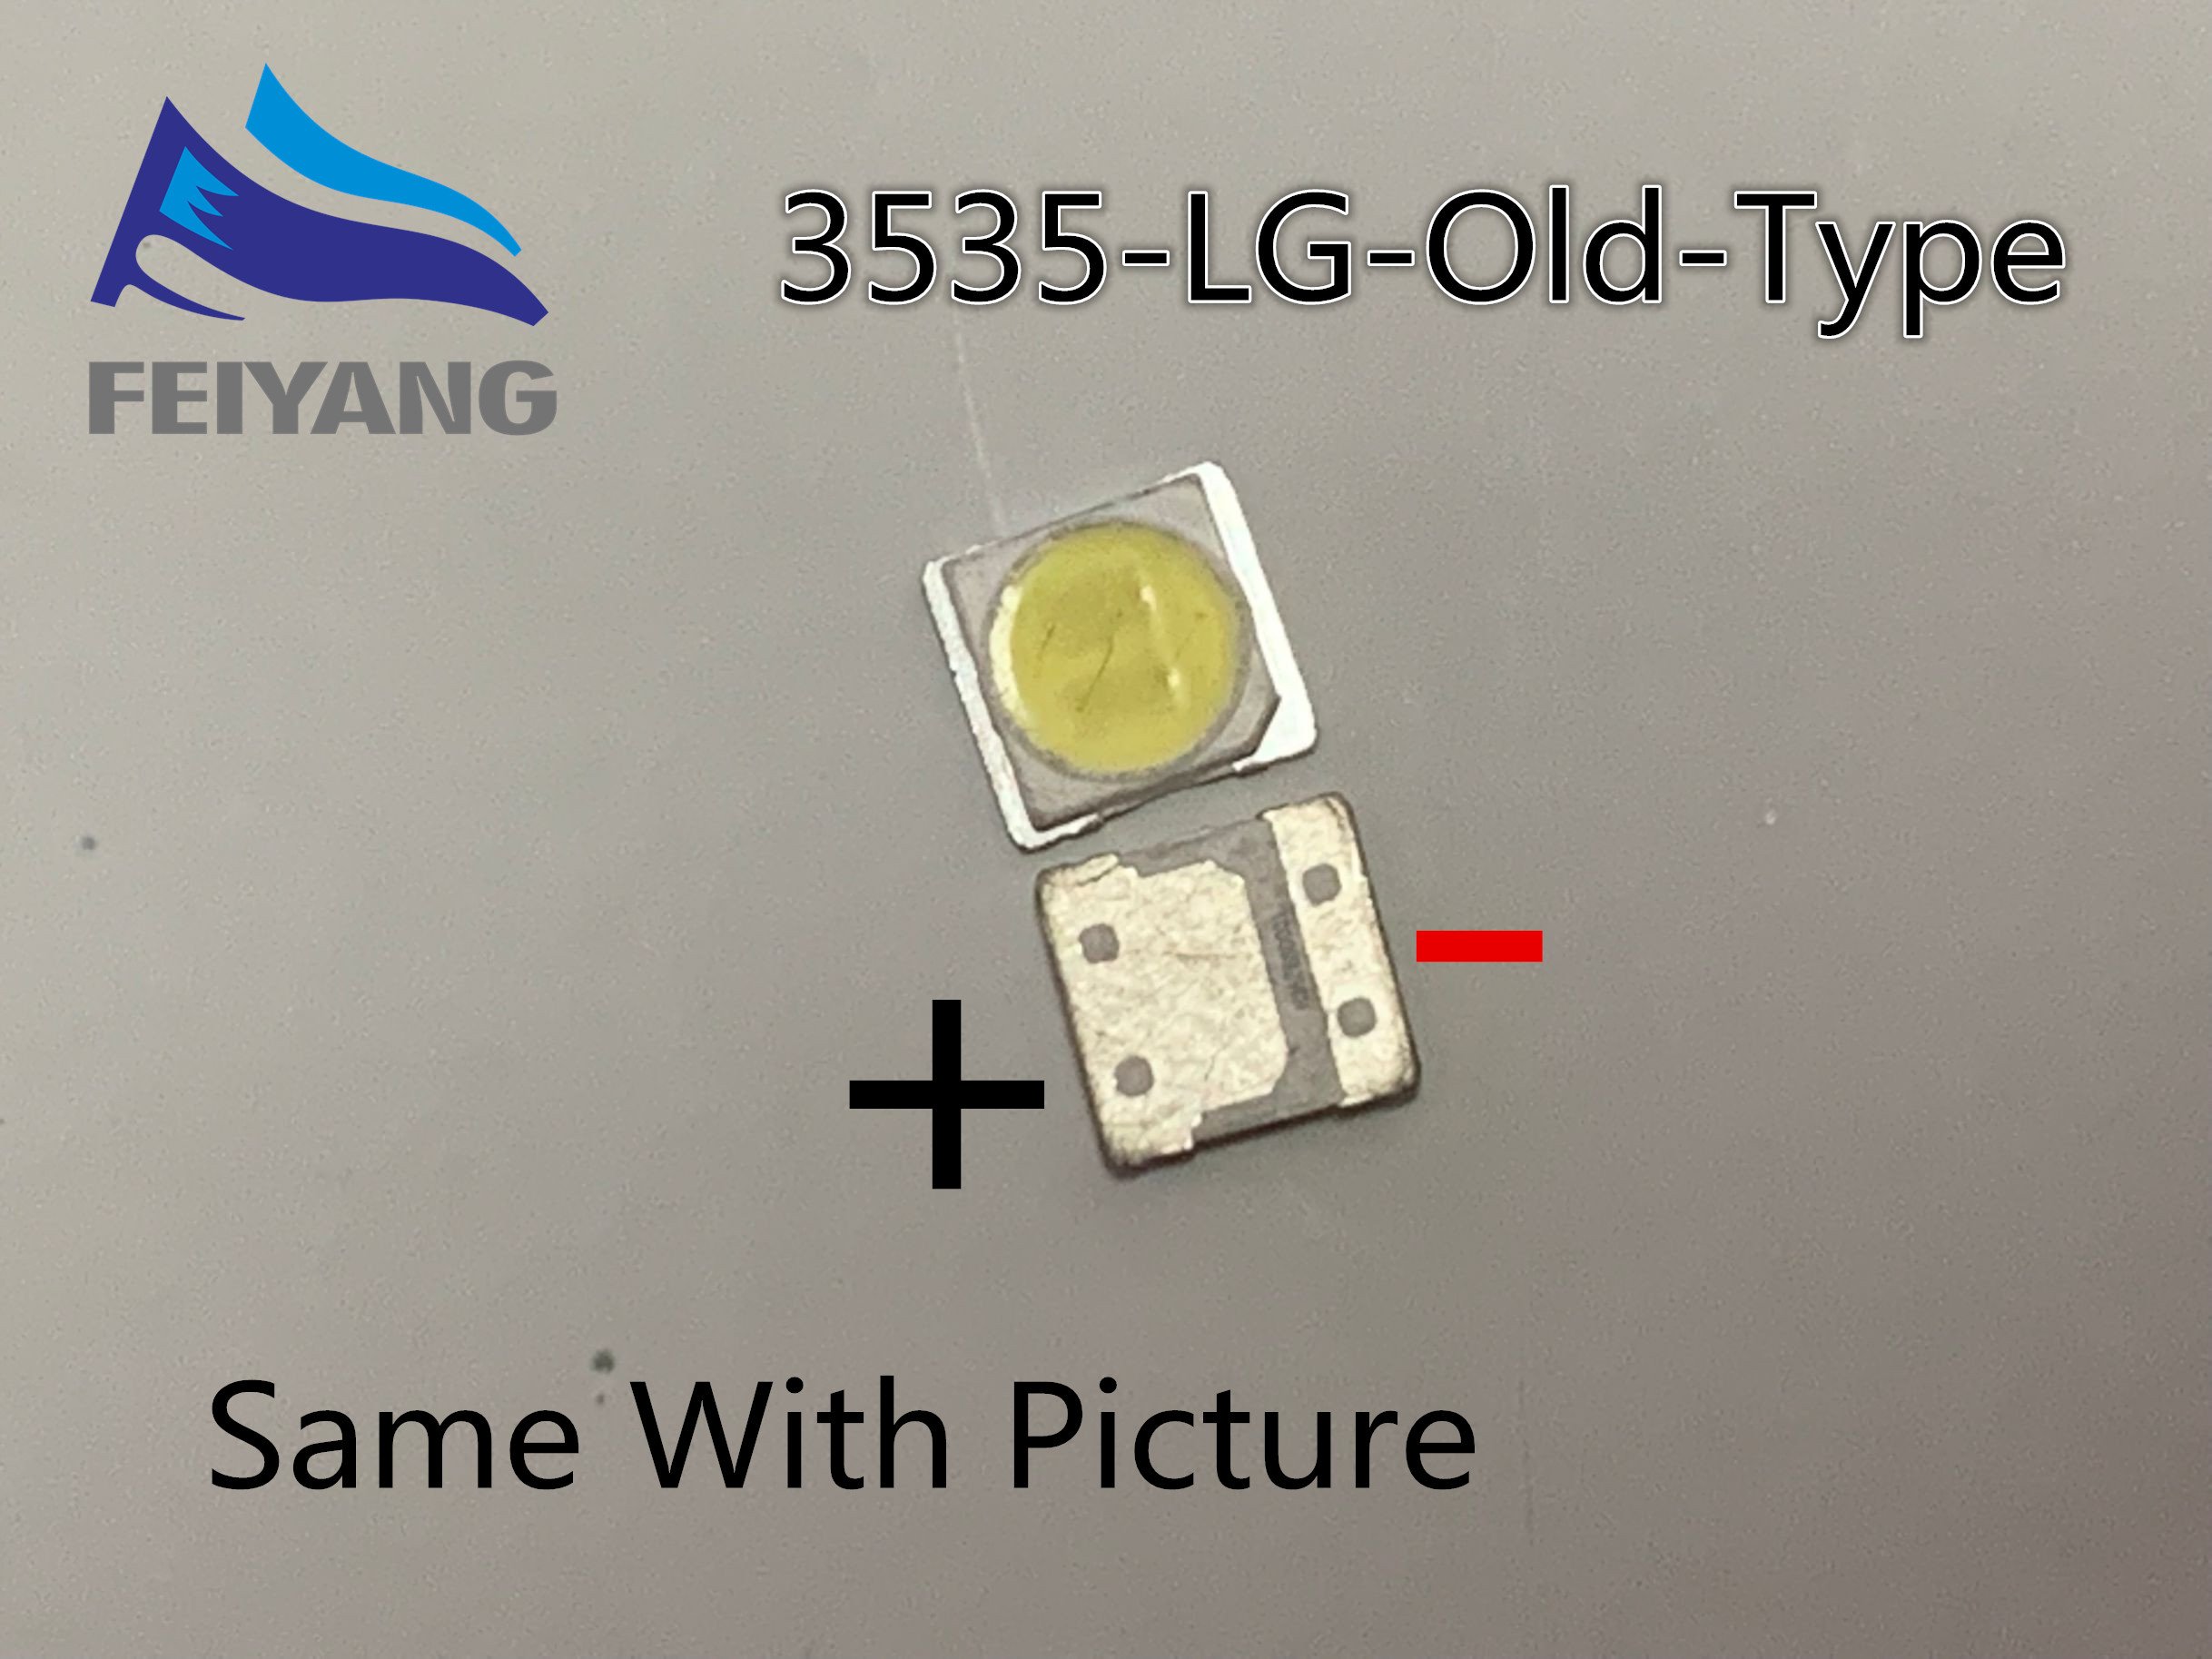 50PCS FOR LCD TV Repair LG Led TV Backlight Strip Lights With Light-emitting Diode 3535 SMD LED 3535 2W 6V 150LM Old Type